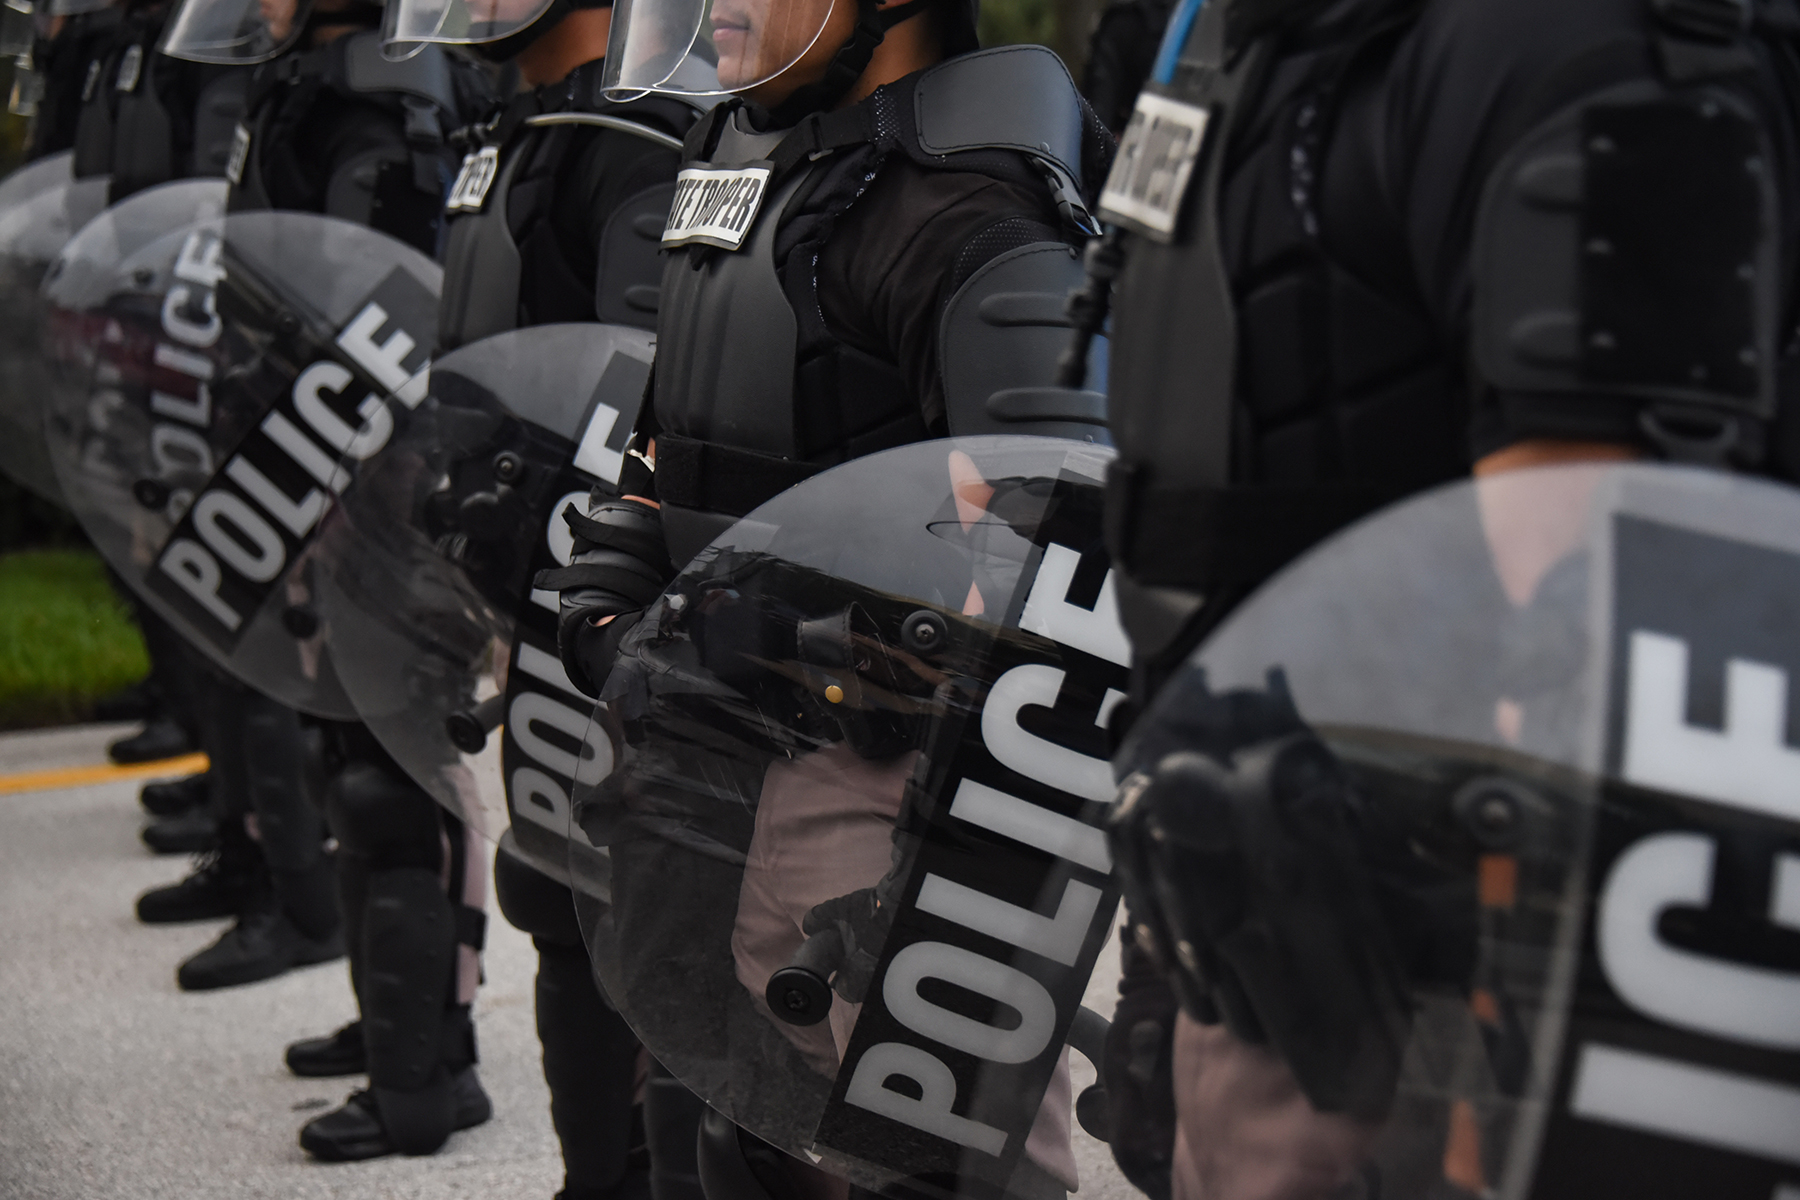 A Practical Guide to Defunding the Police